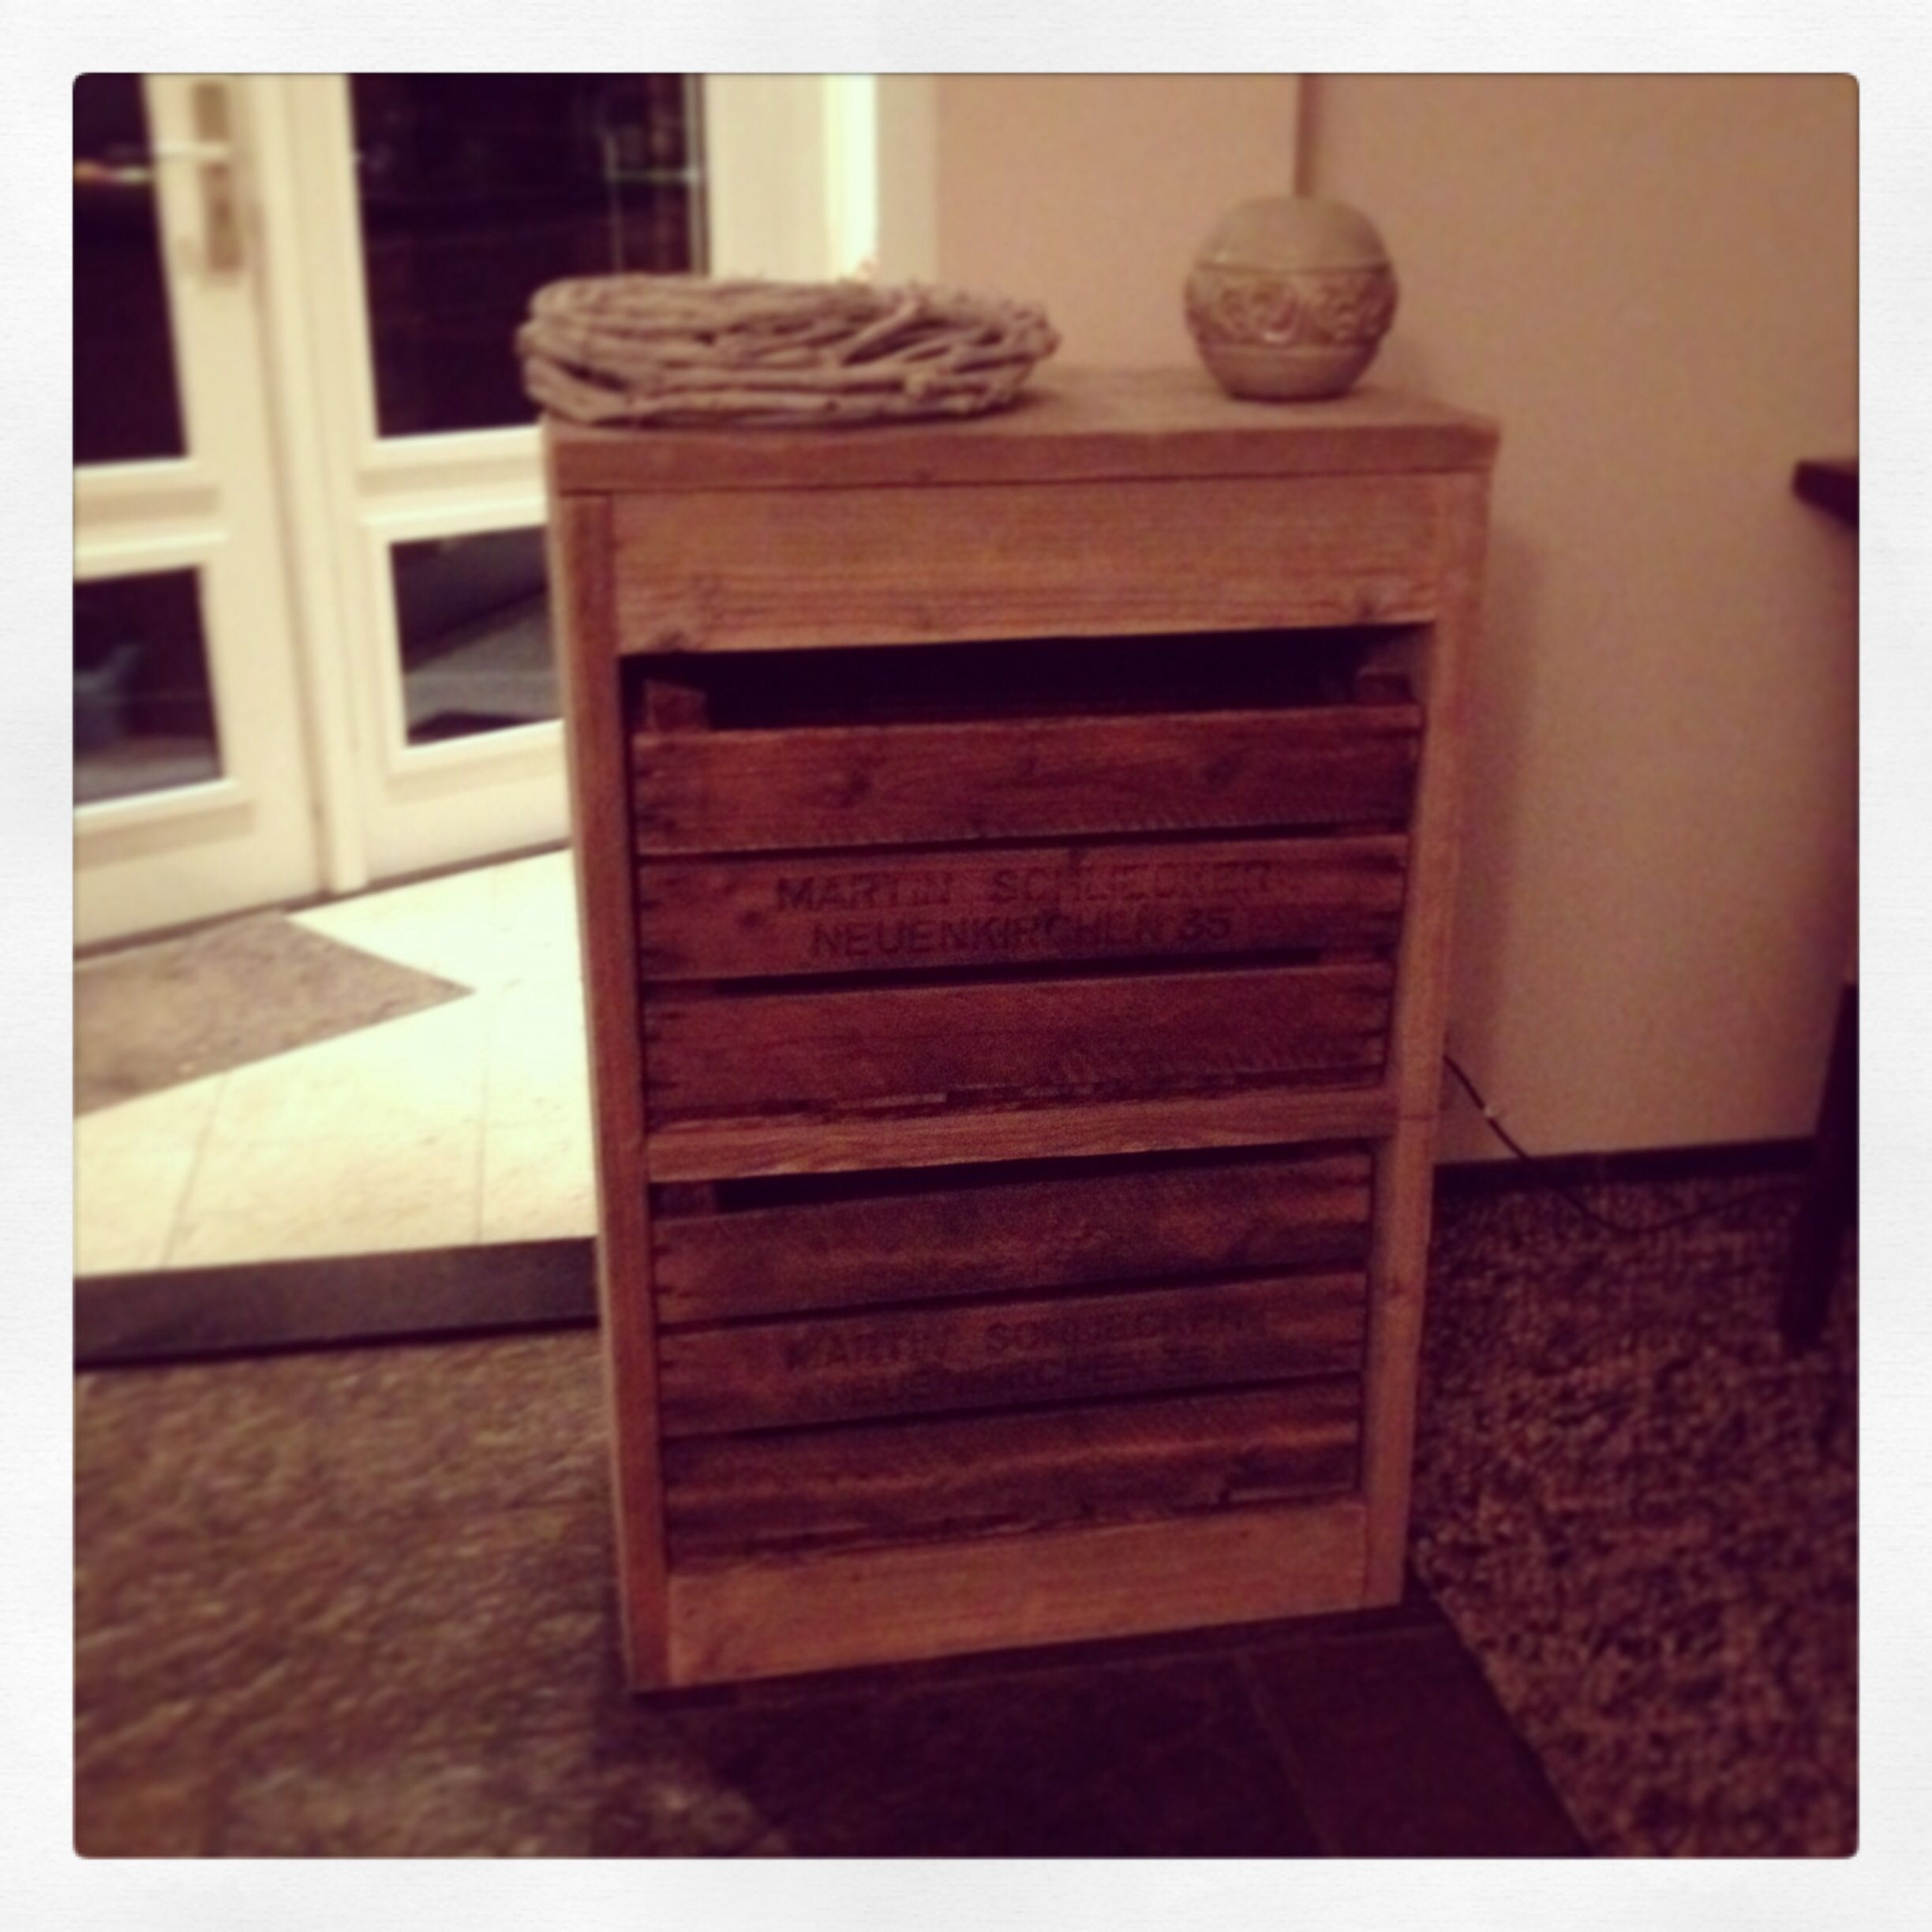 selfmade cabinet | hecho a mano | pinterest | cabinets